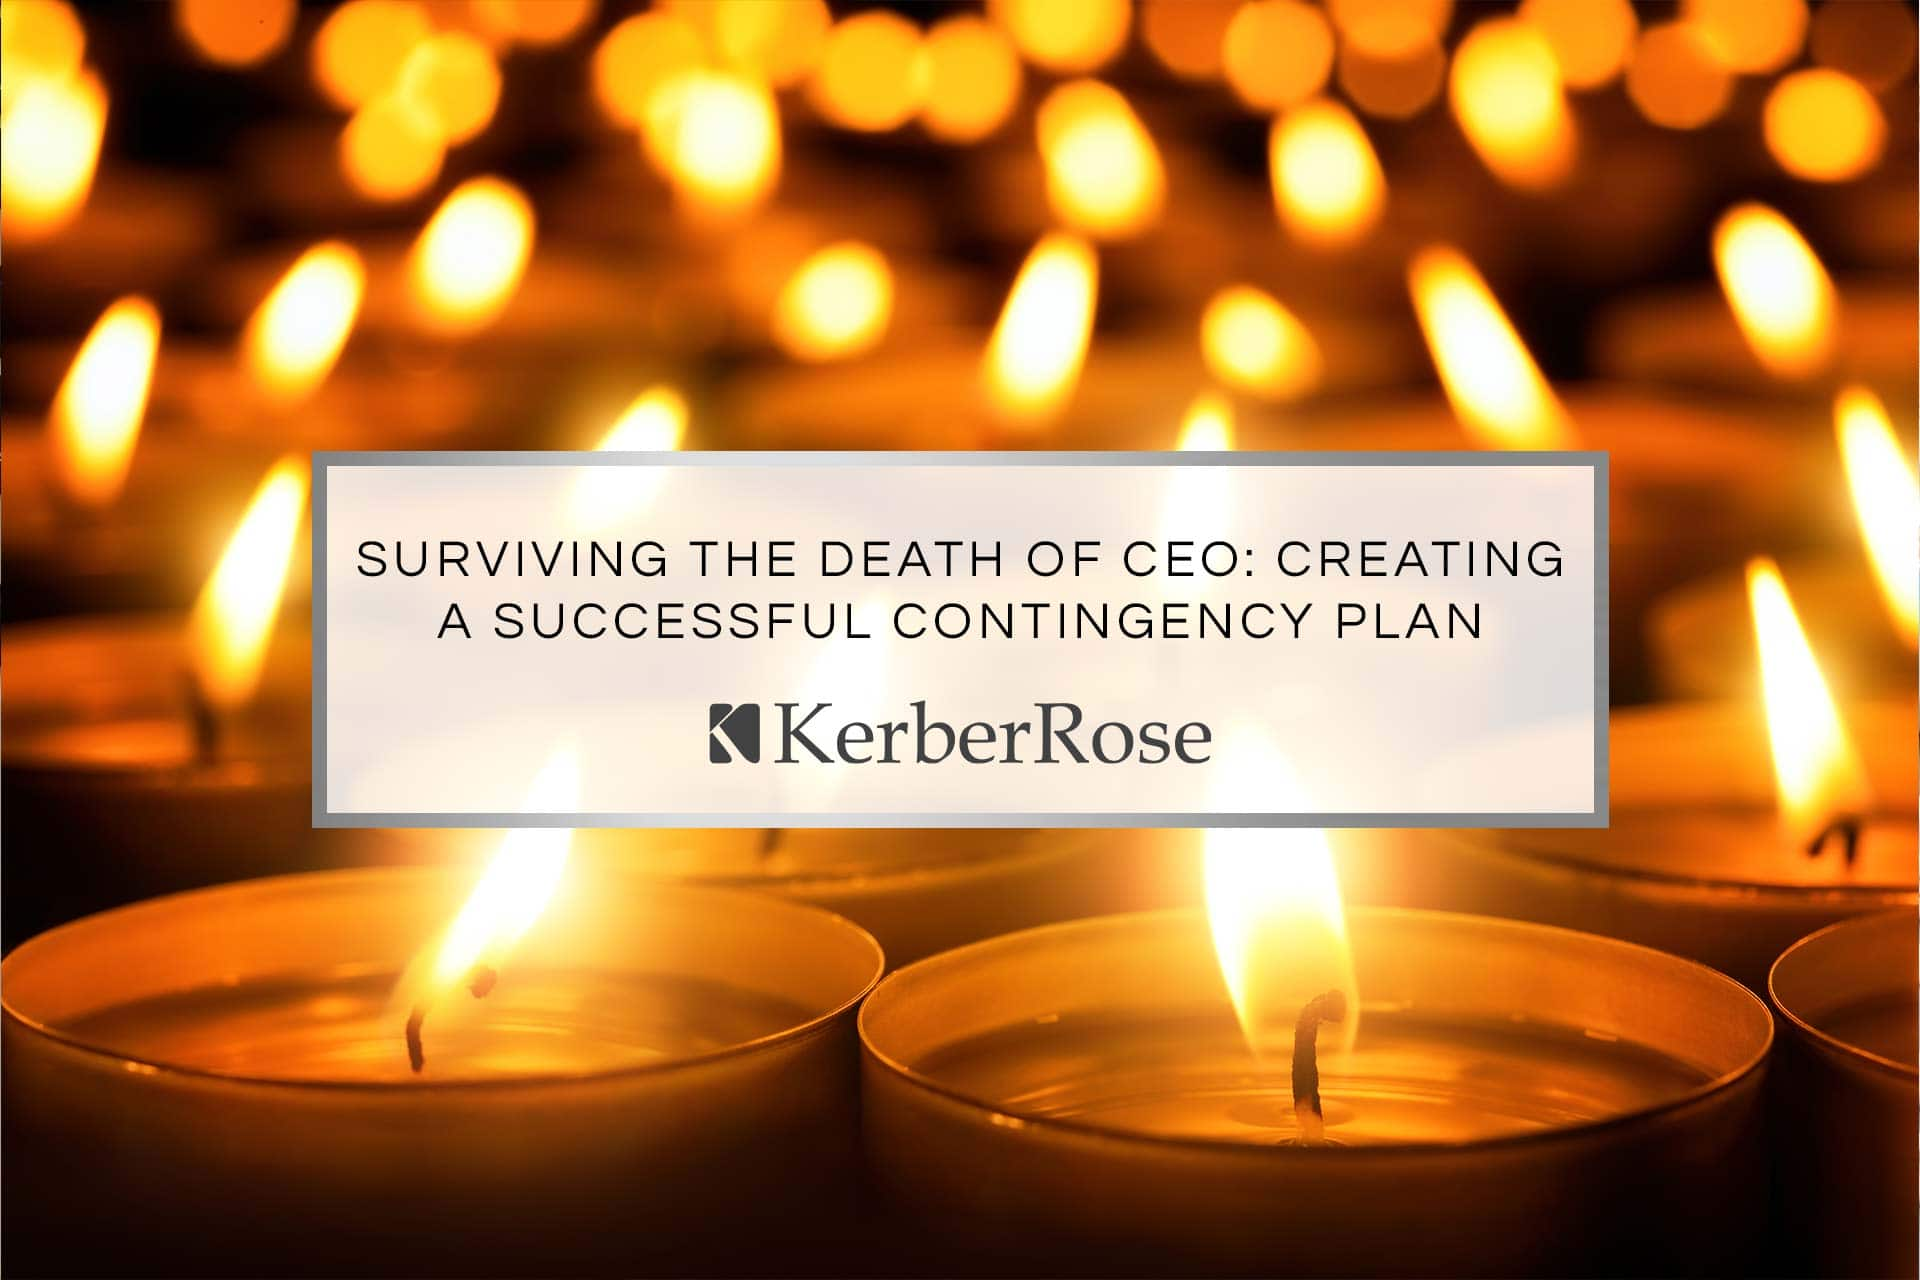 Surviving the Death of CEO: Creating a Successful Contingency Plan